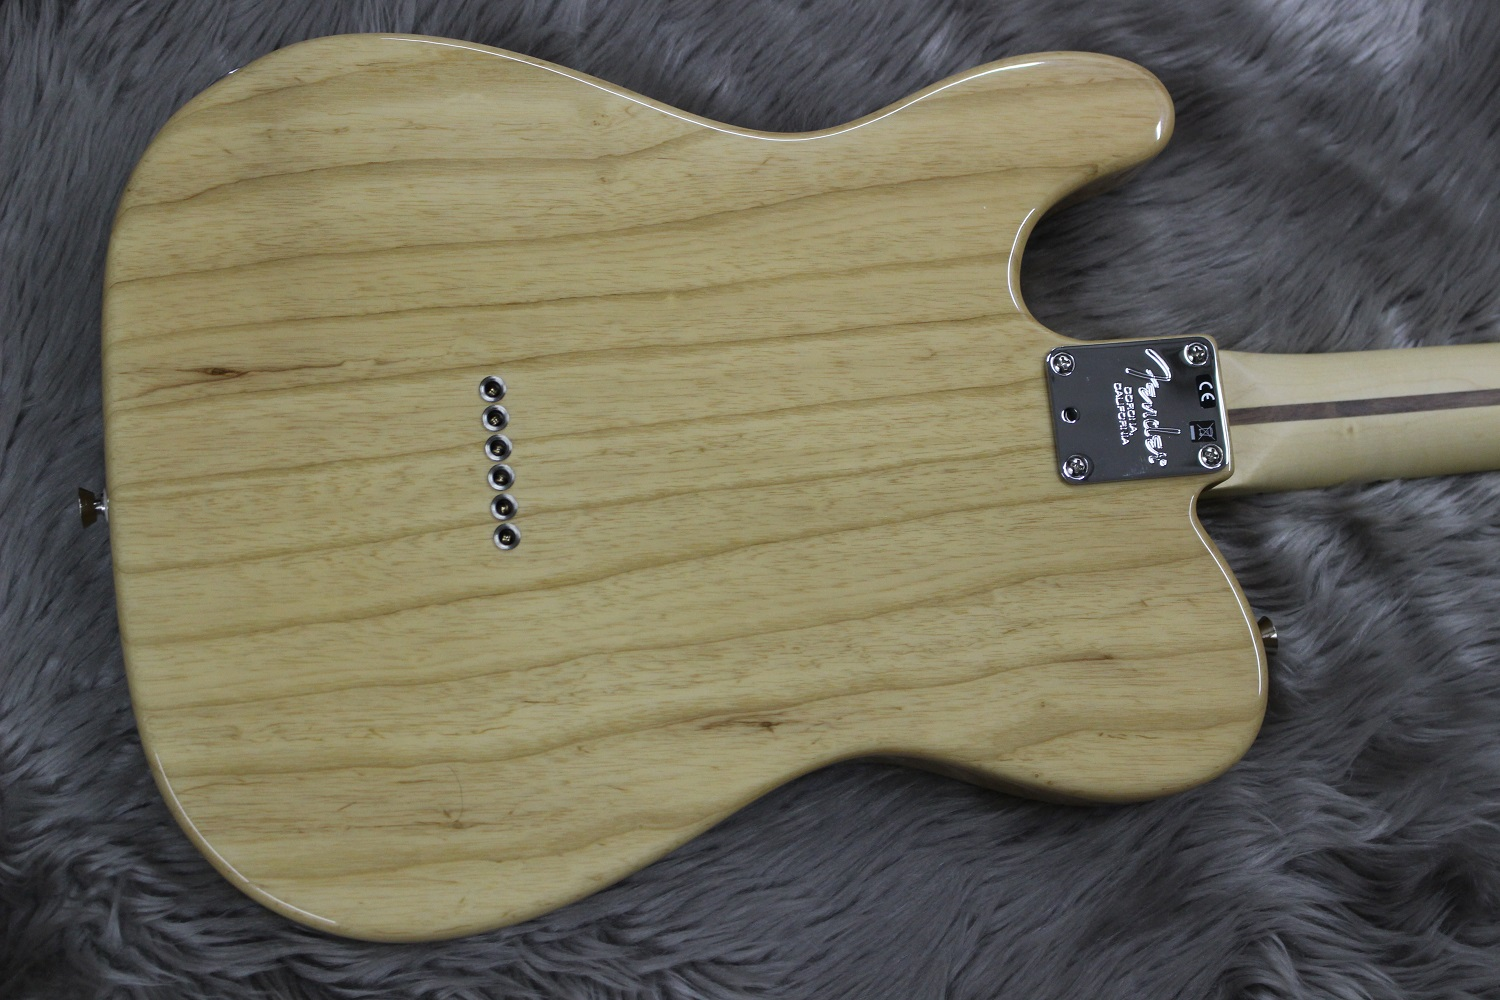 50S TELE LACQUER MNのボディバック-アップ画像